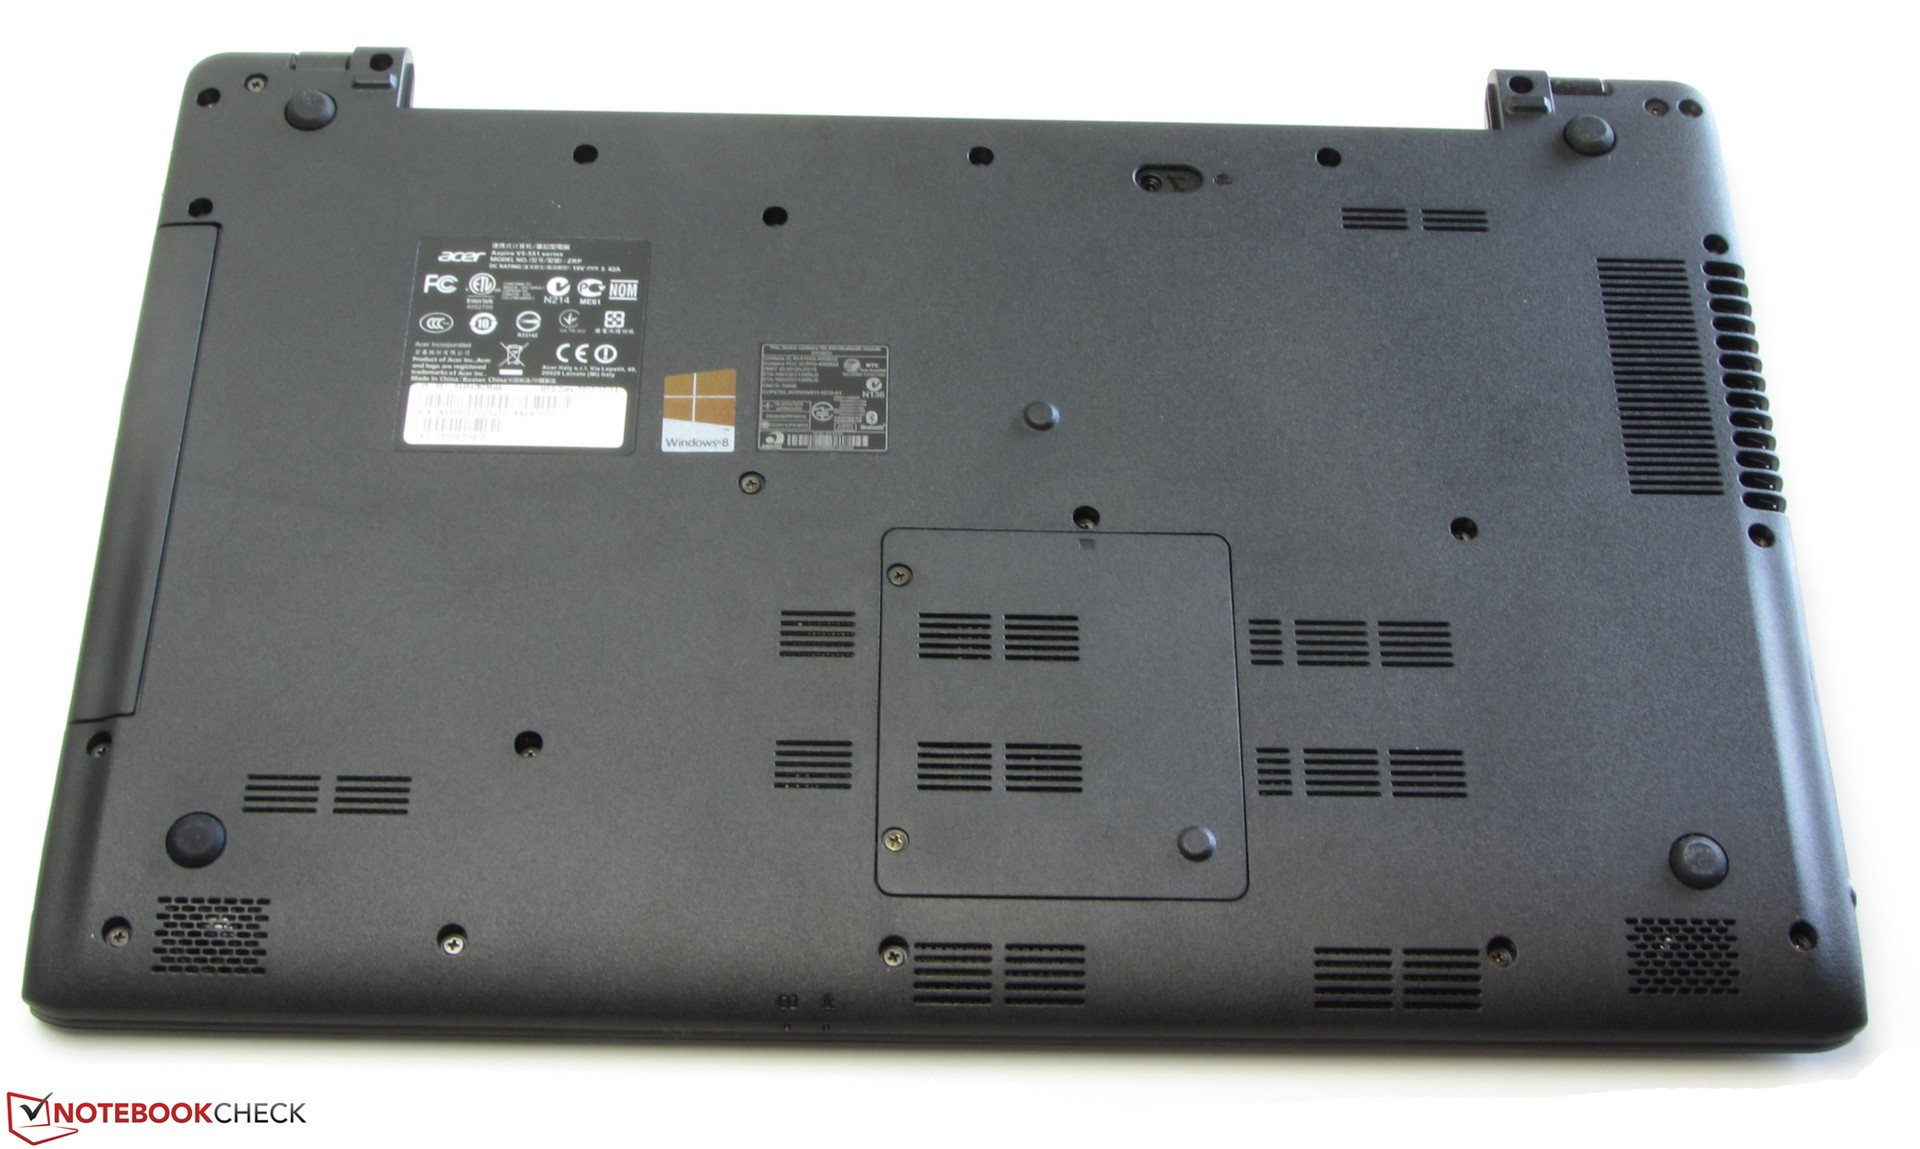 ACER ASPIRE V5-551 LAPTOP WINDOWS 8 X64 DRIVER